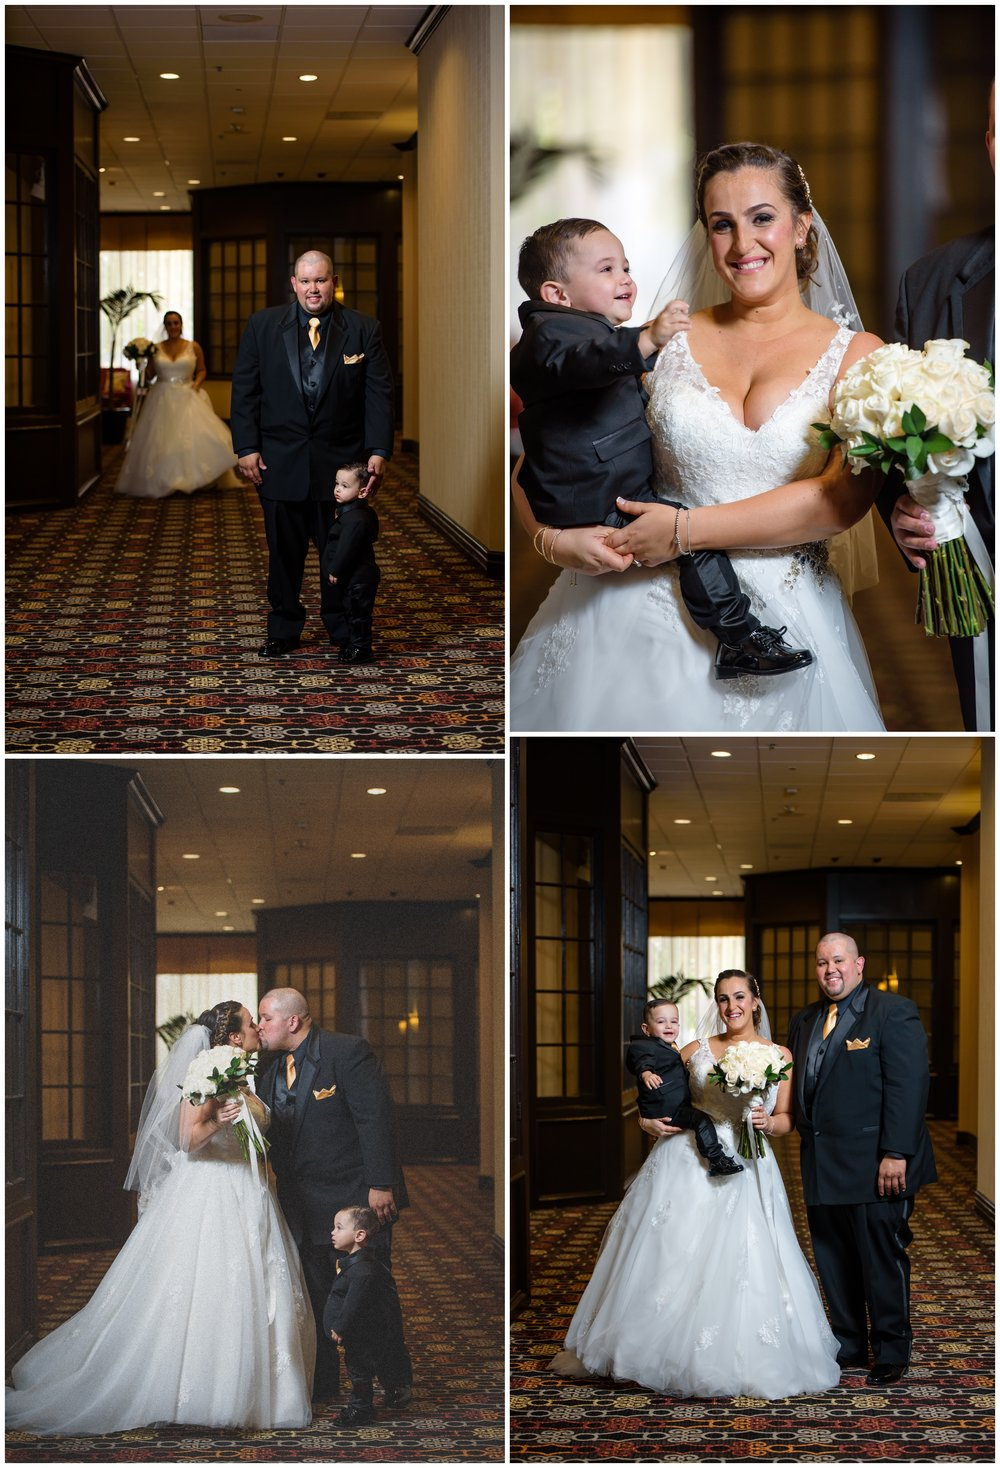 First looks are awesome especially when time constraints are a big factor. Normally I like to do first looks outdoors with natural light but that's not always an option. Here we had a first look in the very same hotel where she got ready and look how happy  they are to see each other,